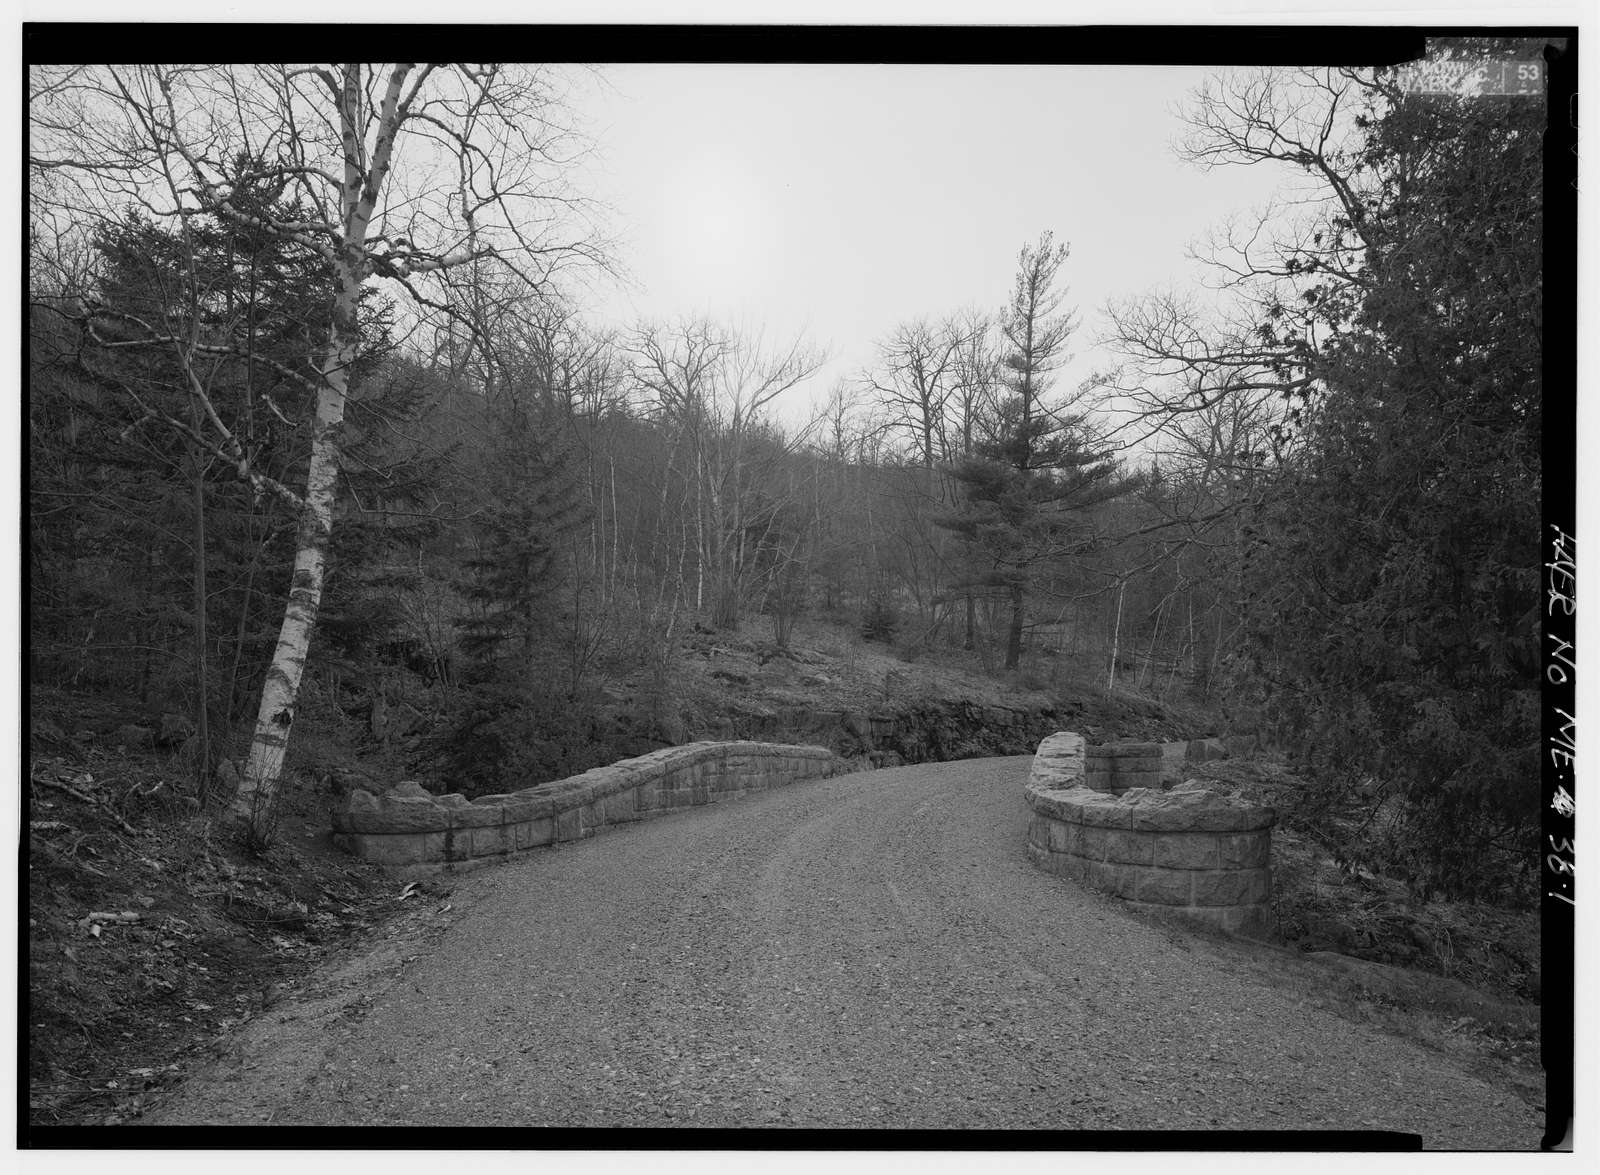 Chasm Brook Bridge, Spanning Chasm Brook on West Sargent Mountain Carriage Road, Bar Harbor, Hancock County, ME